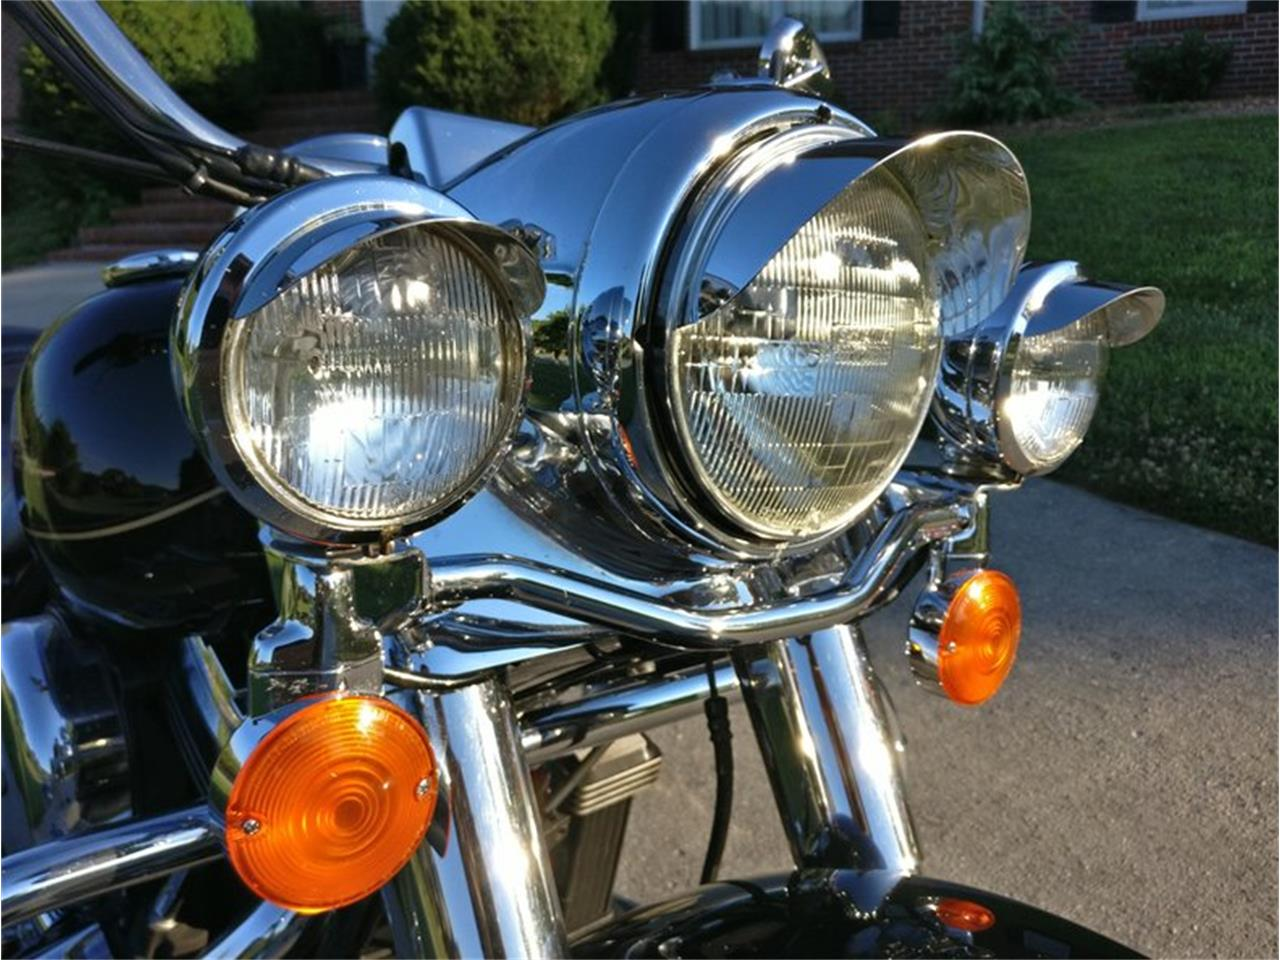 1998 Harley-Davidson Road King for sale in Cookeville, TN – photo 26